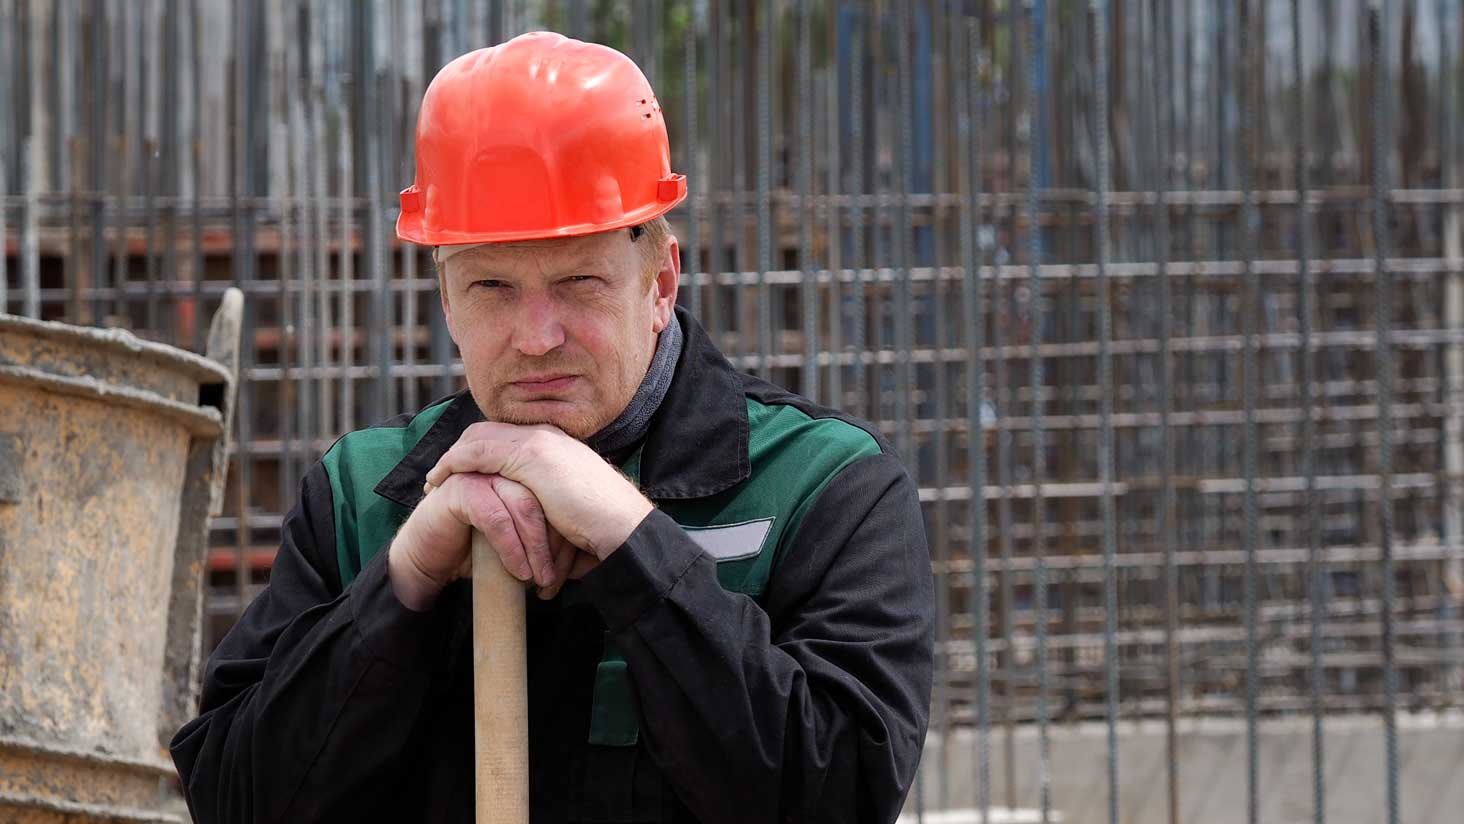 A disgruntled construction worker leaning on his shovel and scowling at the camera.